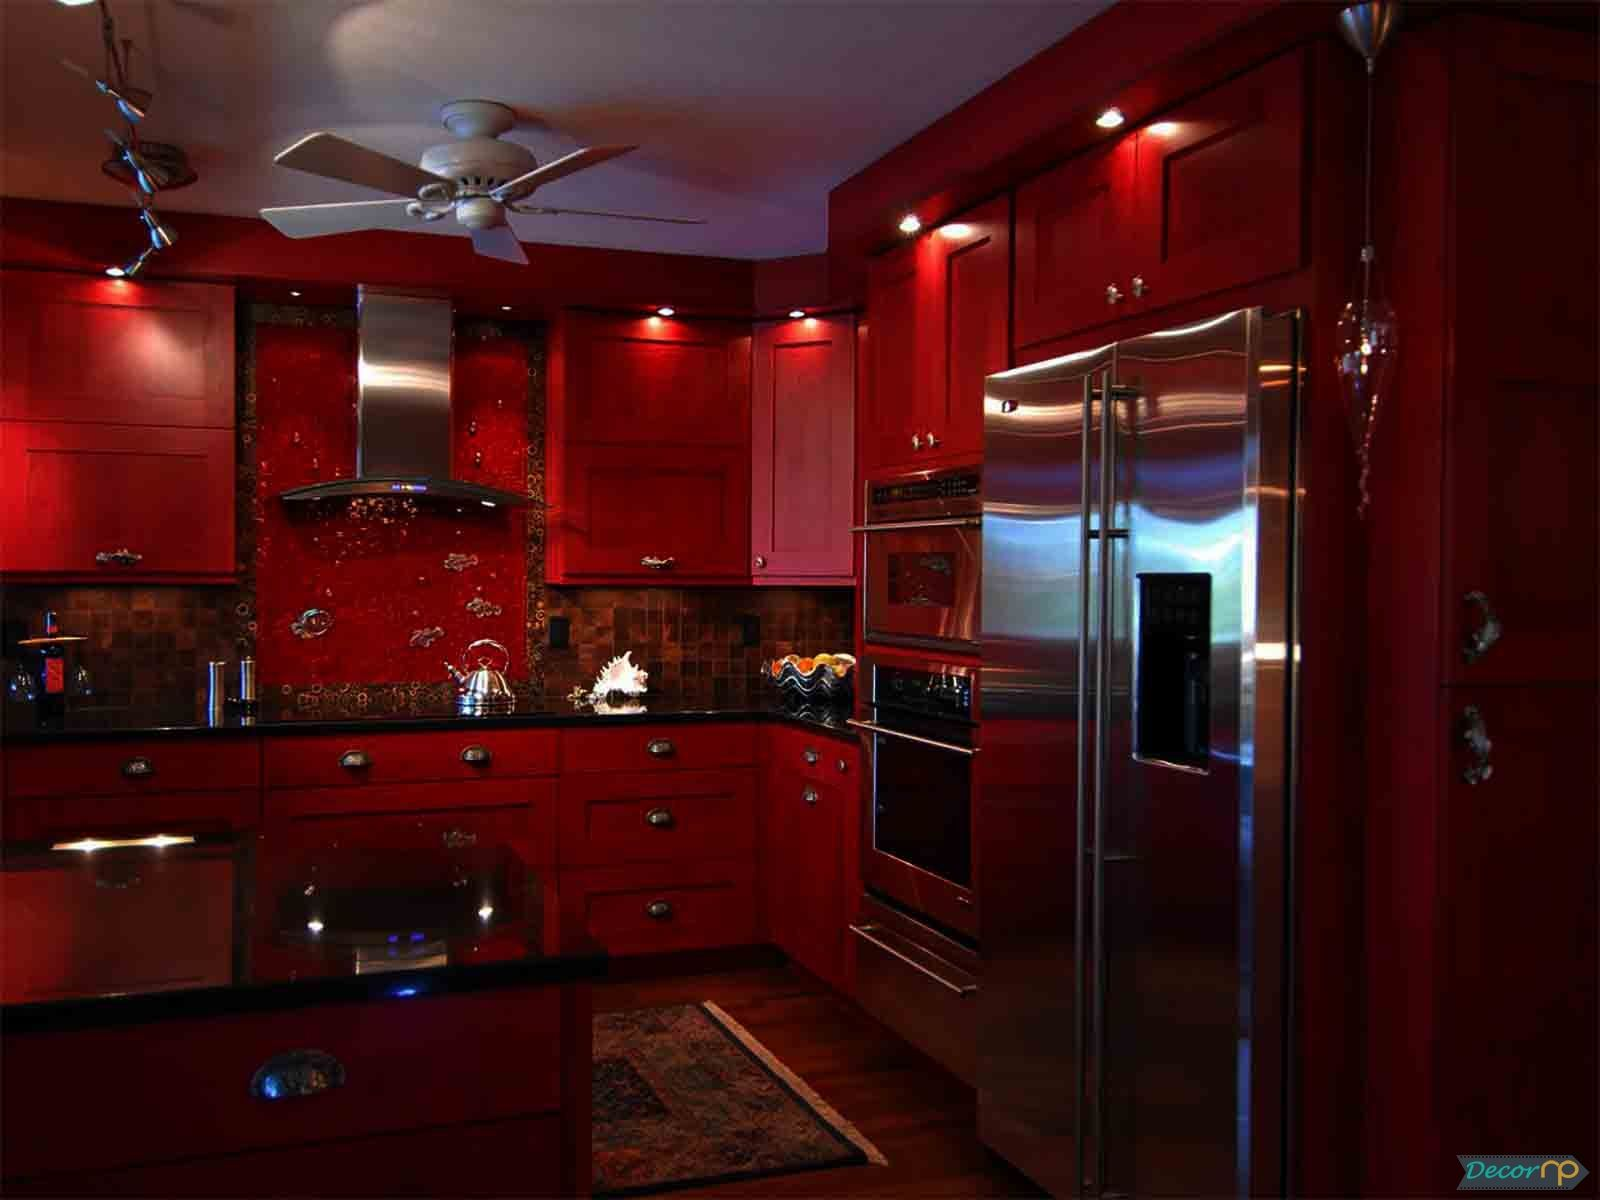 Latest Fashion Kitchen Cabinet Models In 2018 Decornp Kitchen Cabinets For Sale Kitchen Cabinets Models Used Kitchen Cabinets